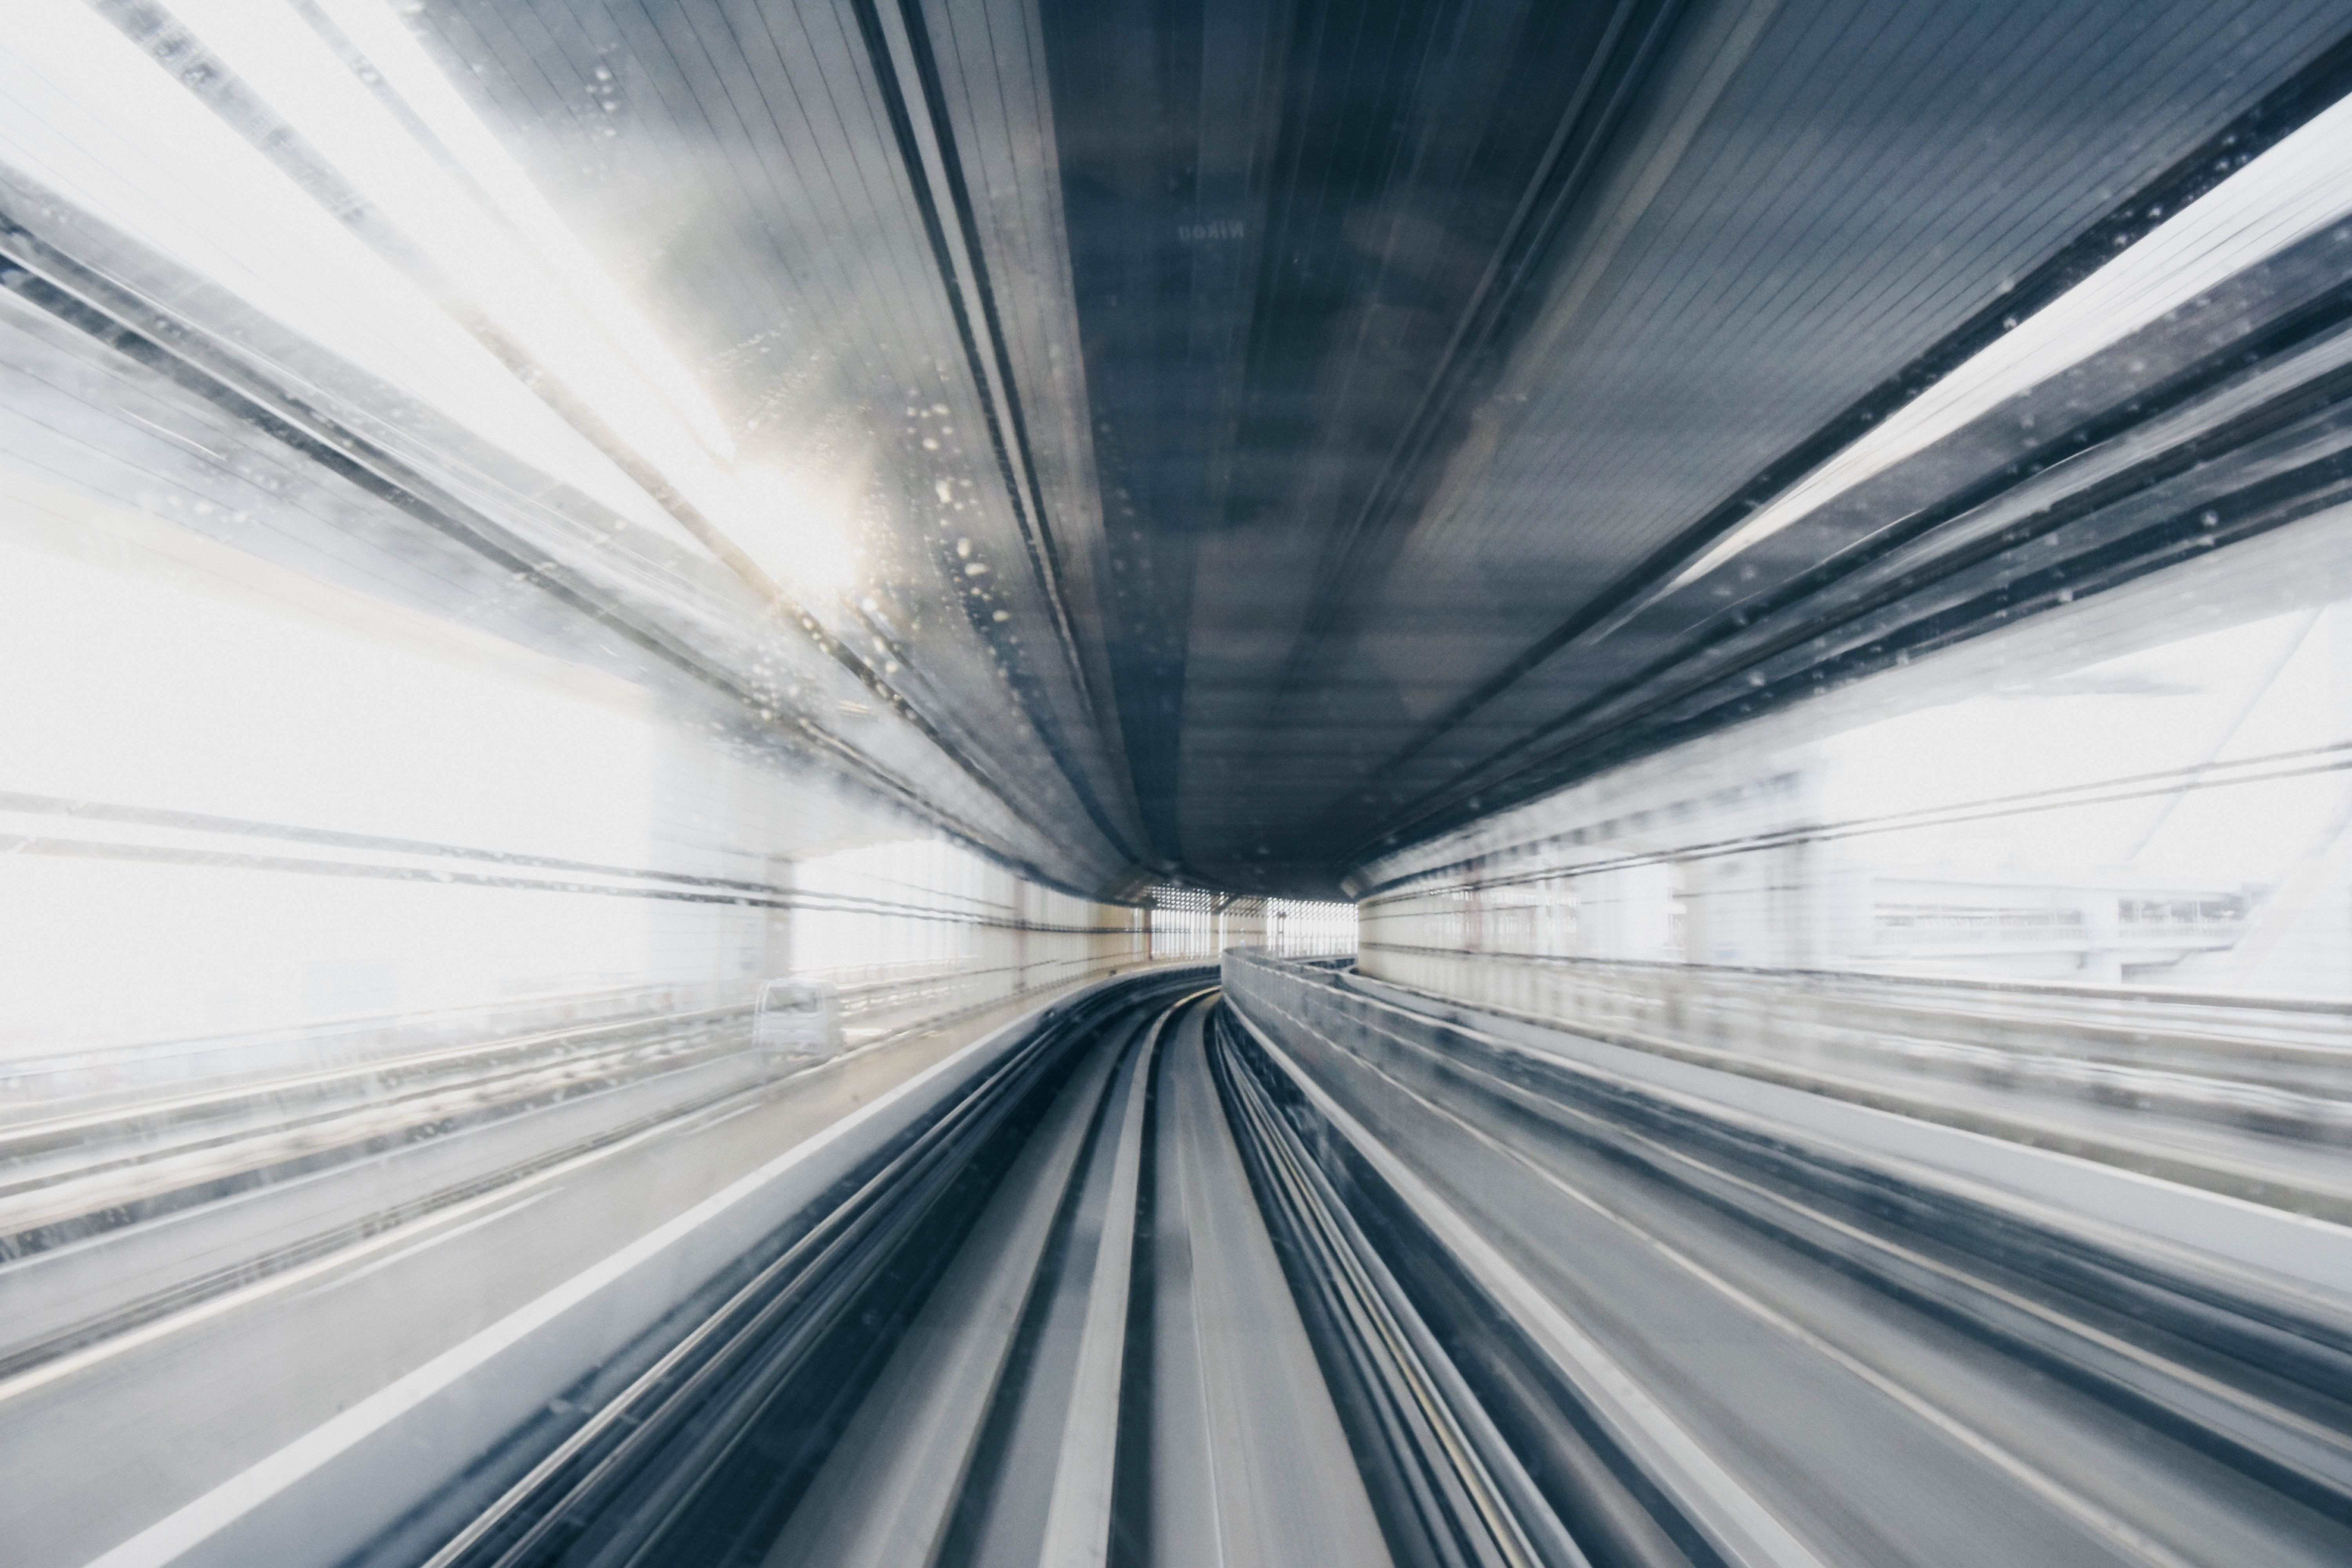 Blurred train traveling fast